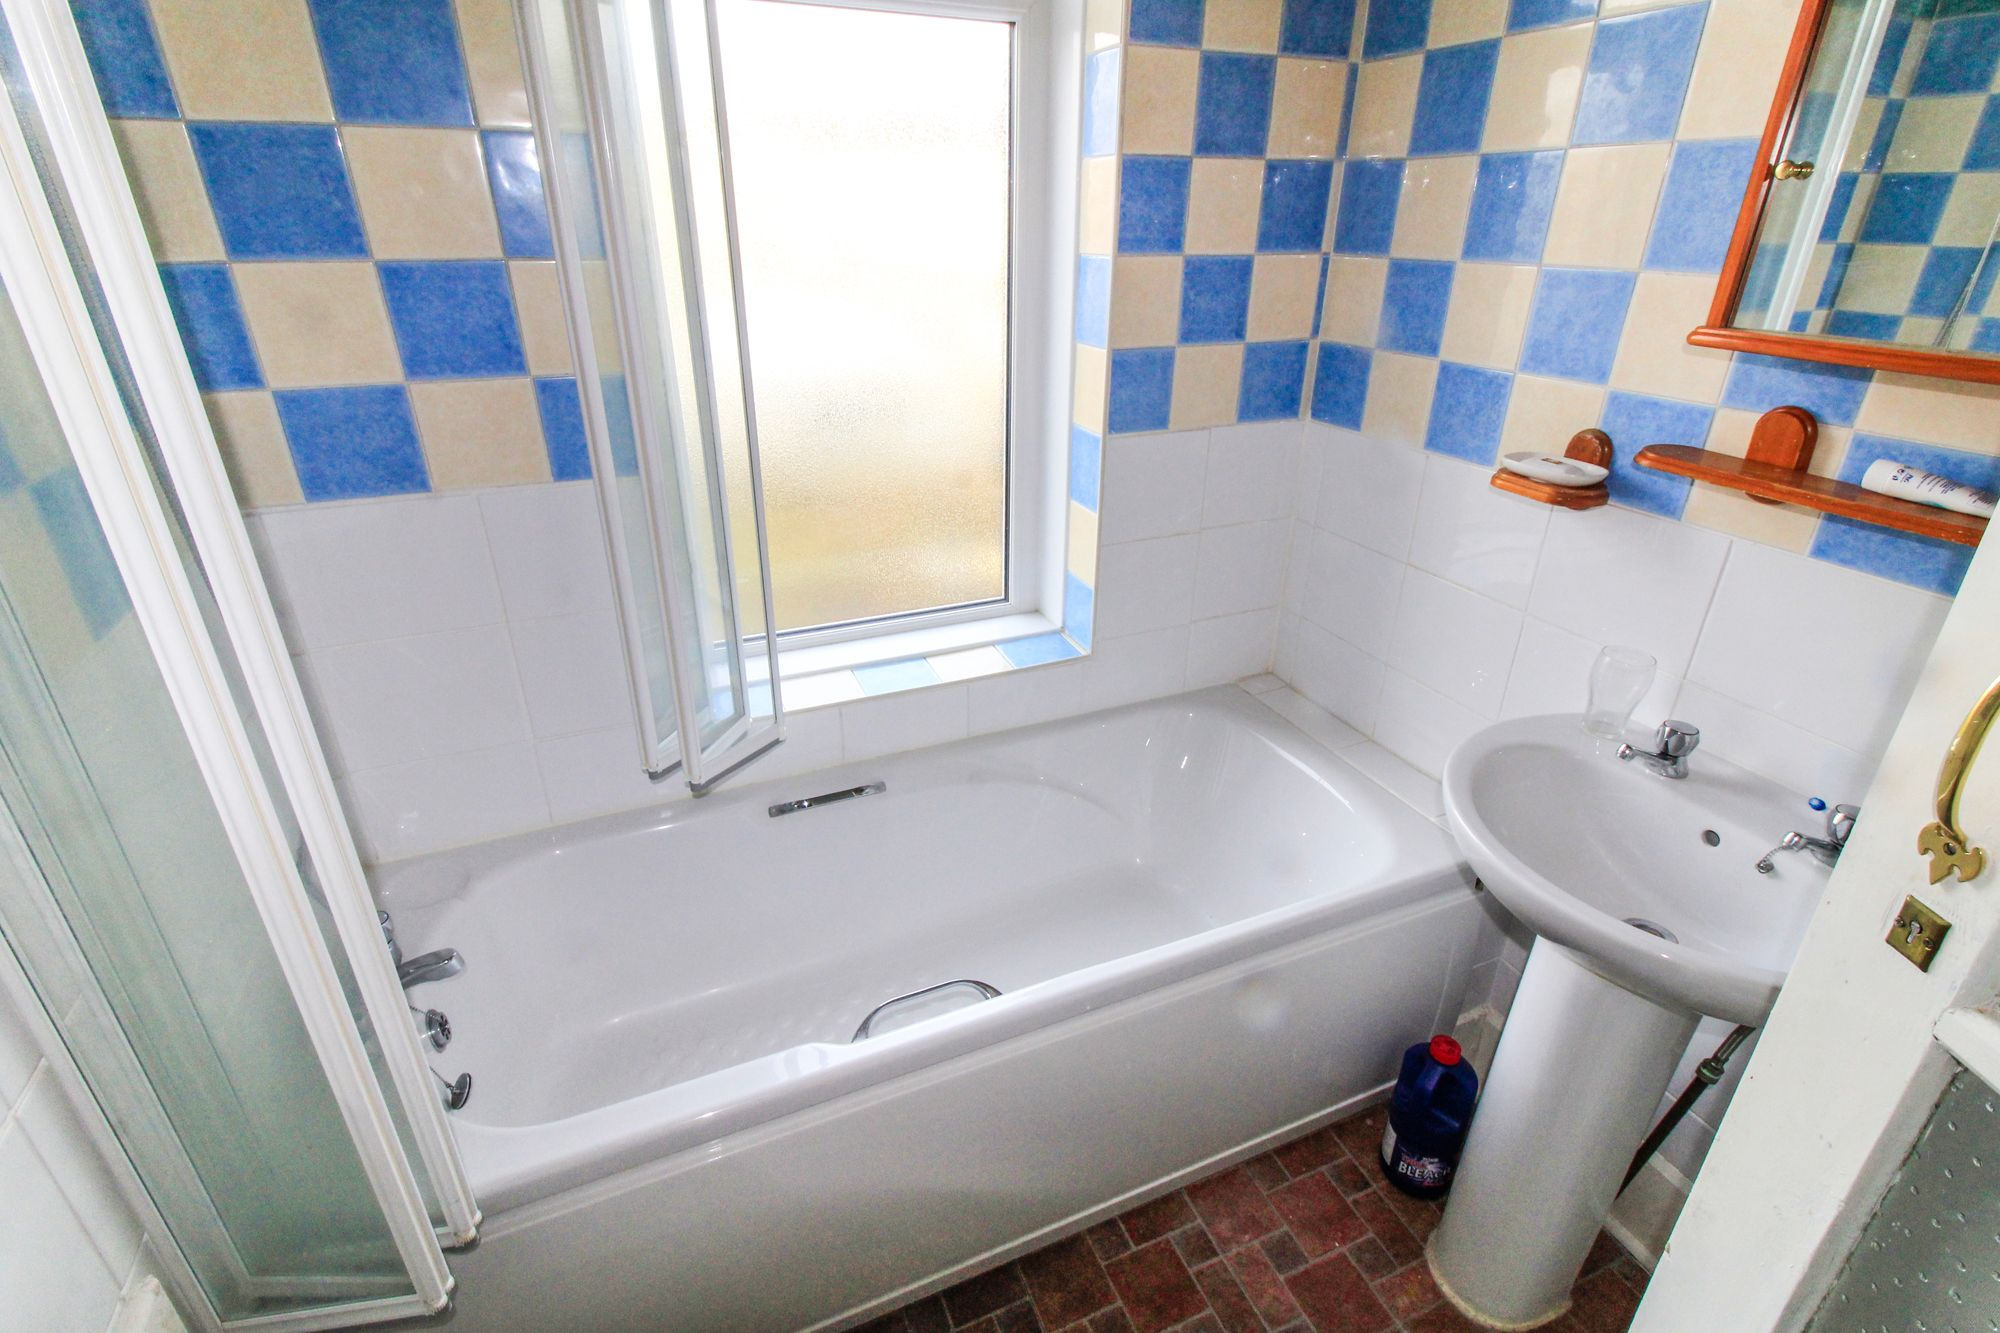 3 bedroom semi-detached house Sale Agreed in Huddersfield - Bathroom